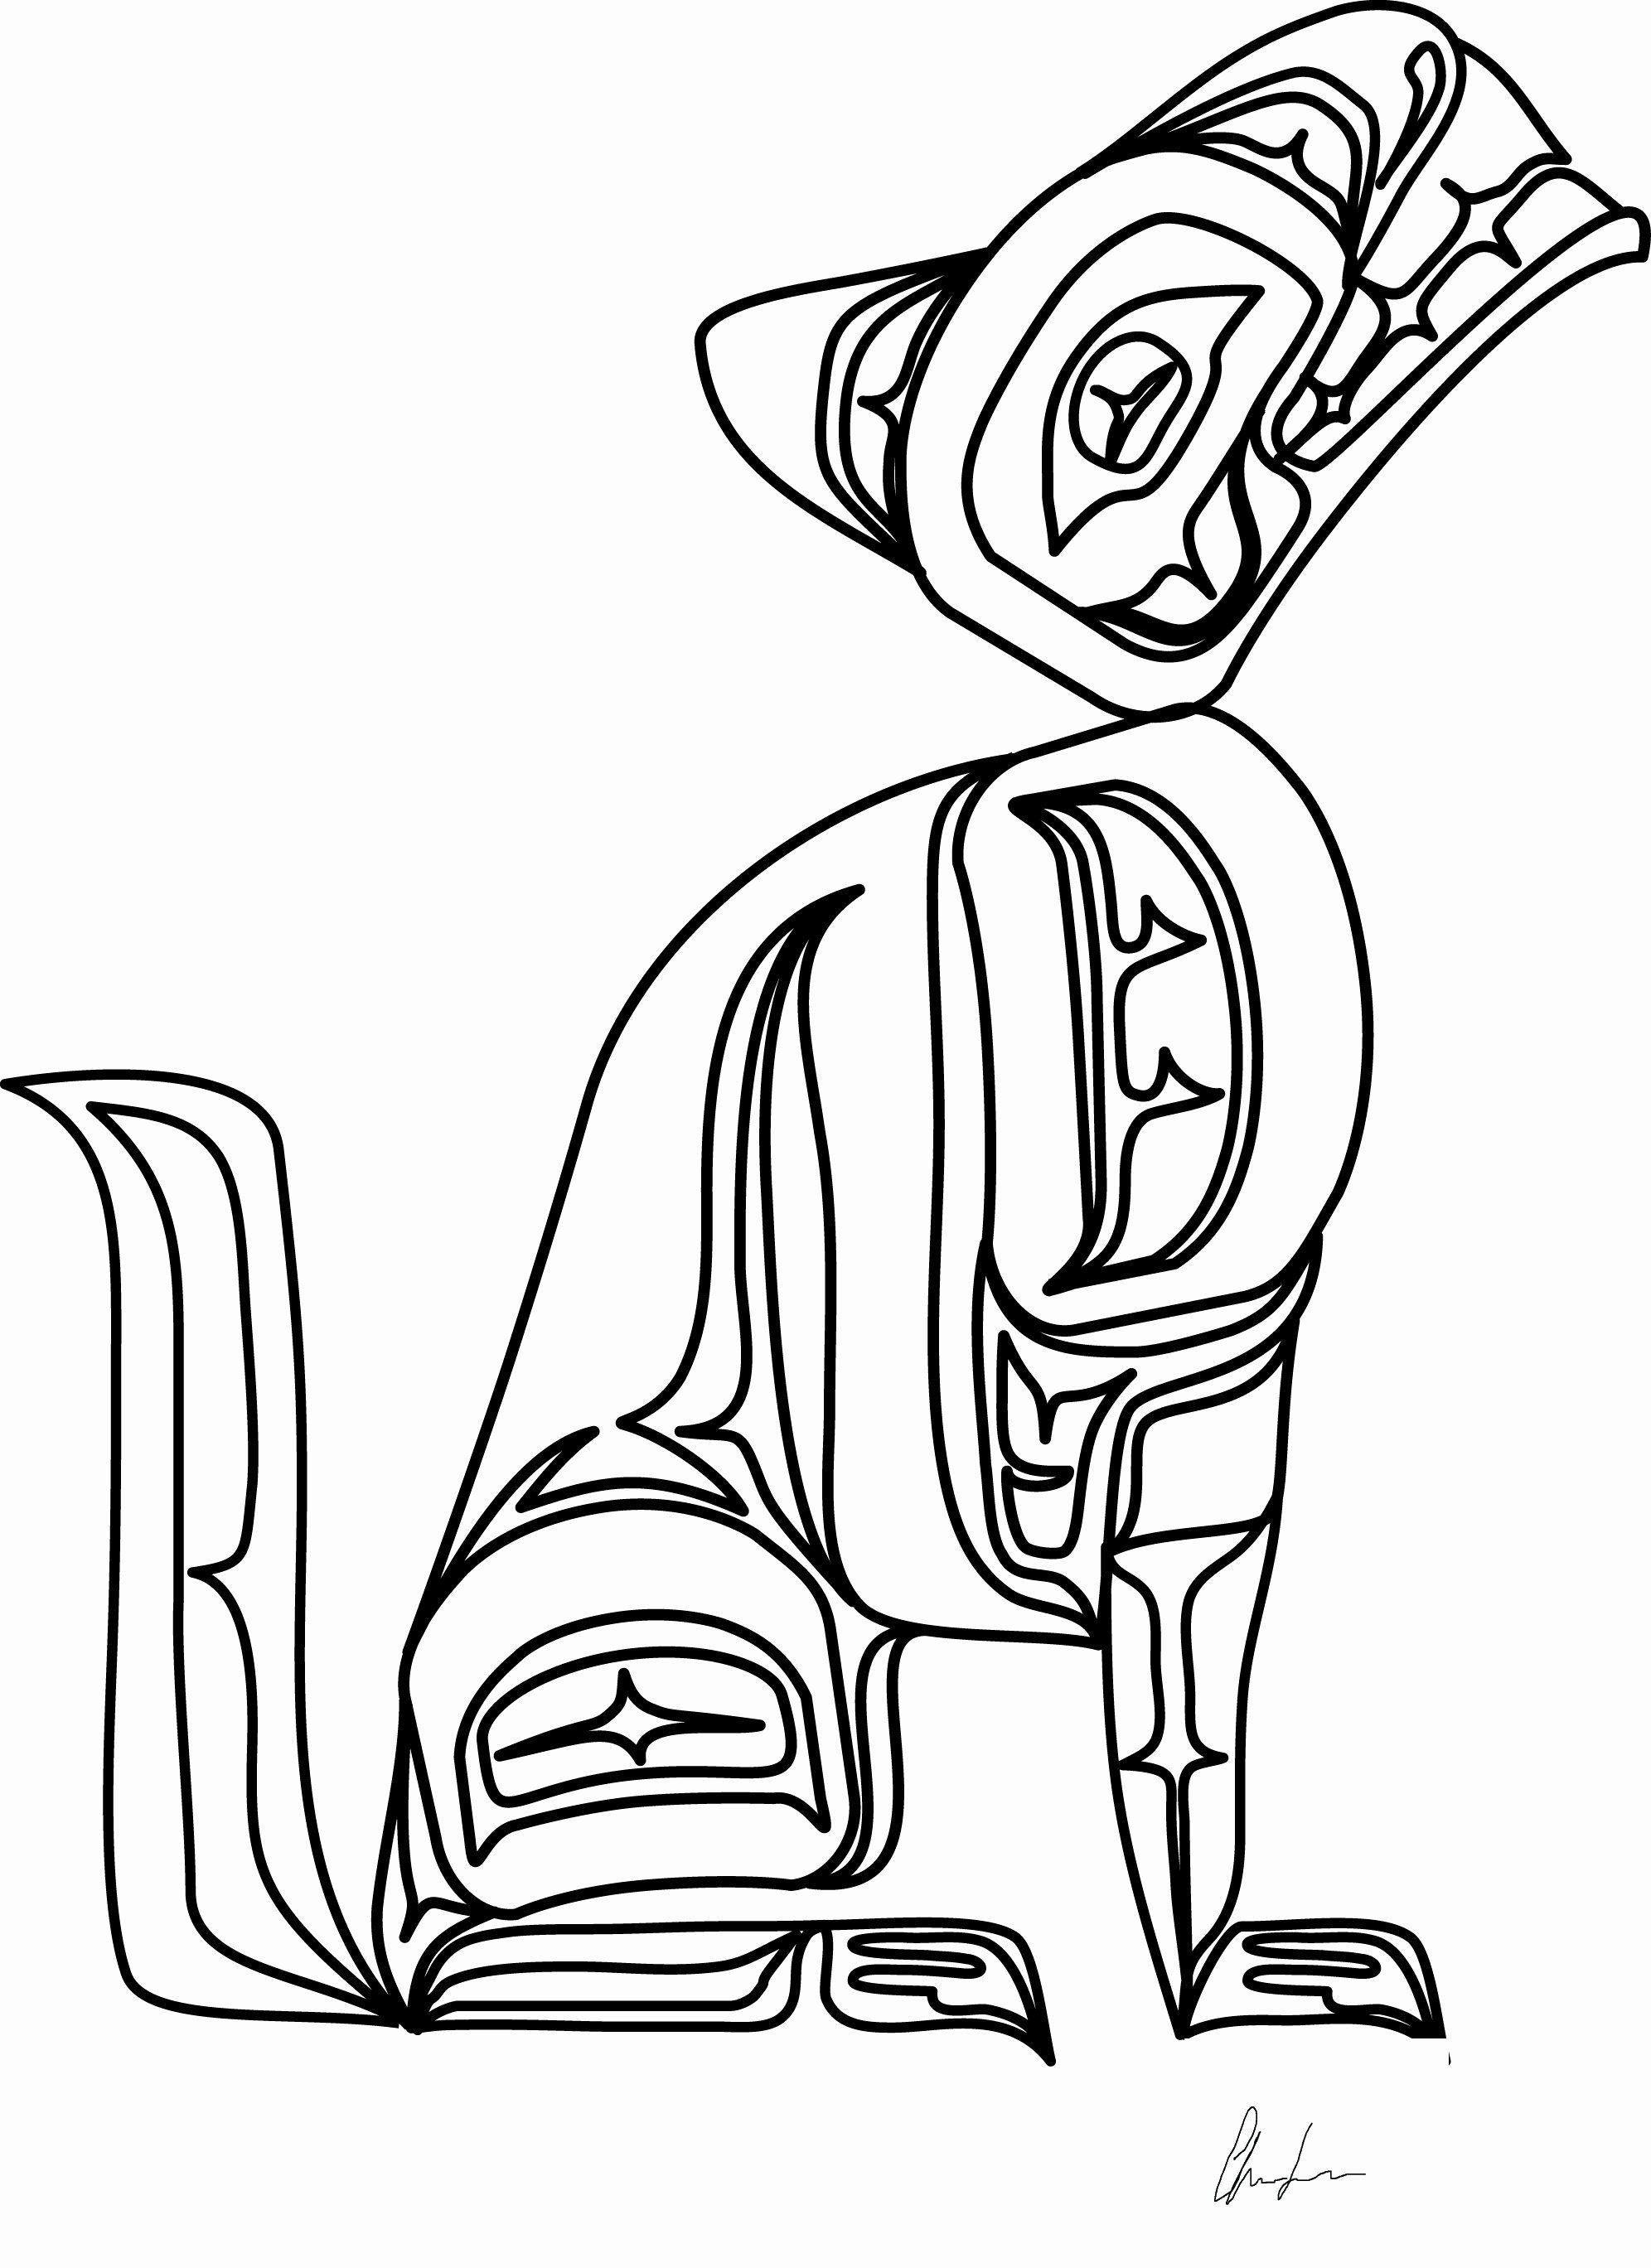 American Gothic Coloring Page Luxury The Best Free Health Coloring Page Images Download Fr Elephant Coloring Page Animal Coloring Pages Coloring Pages For Kids